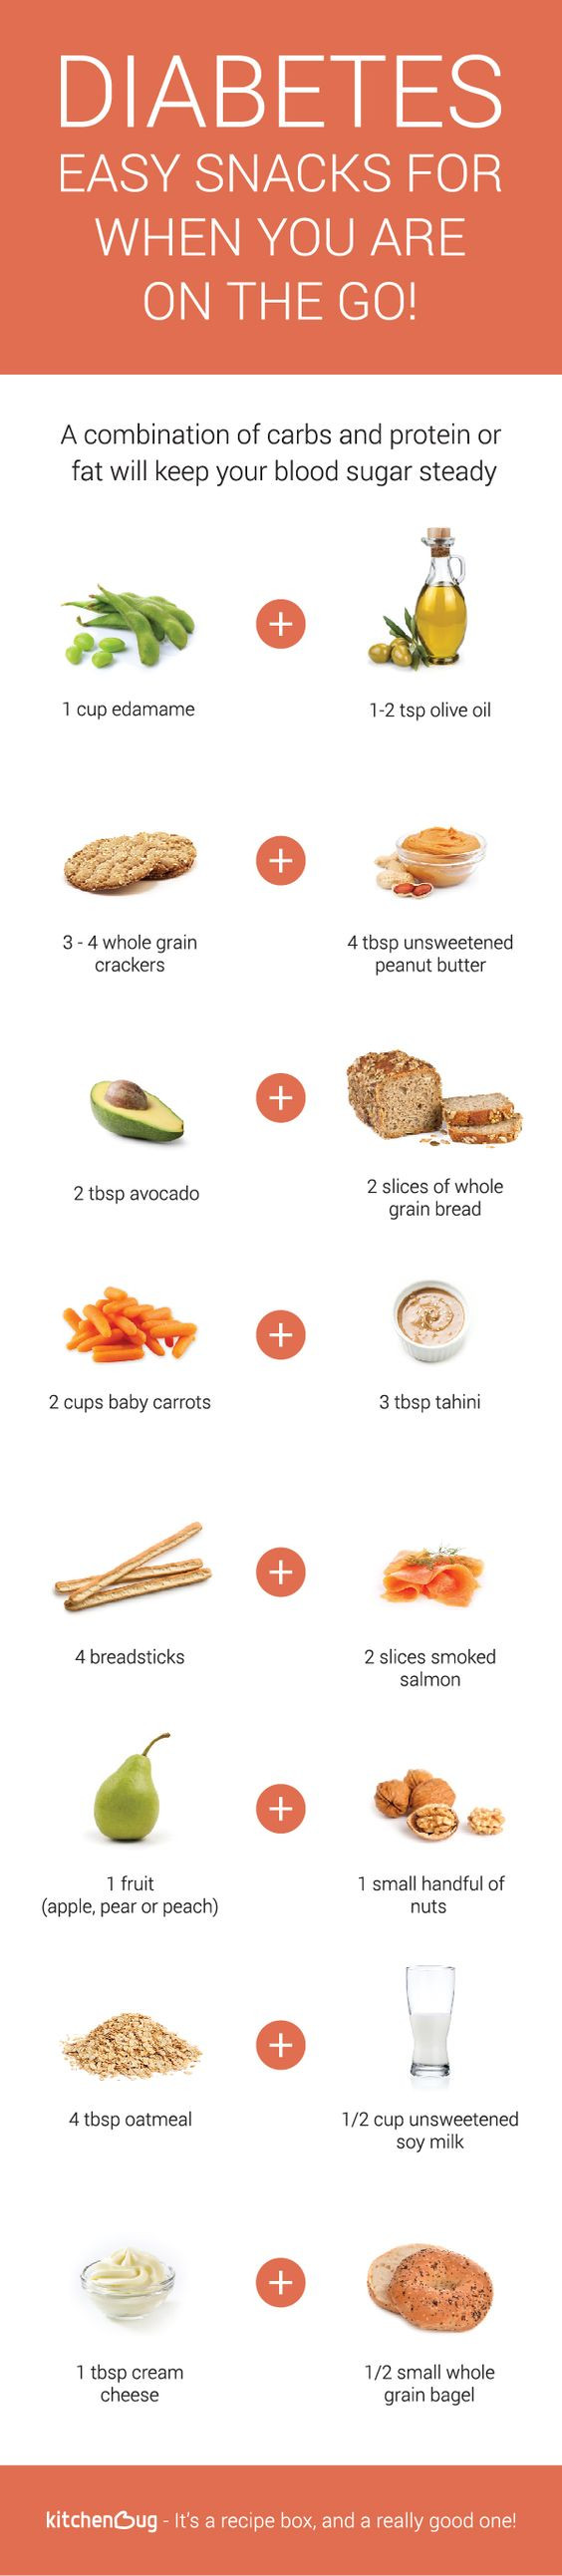 Healthy Snacks For A Diabetic  Snacks for diabetics Simple snacks and Diabetes on Pinterest